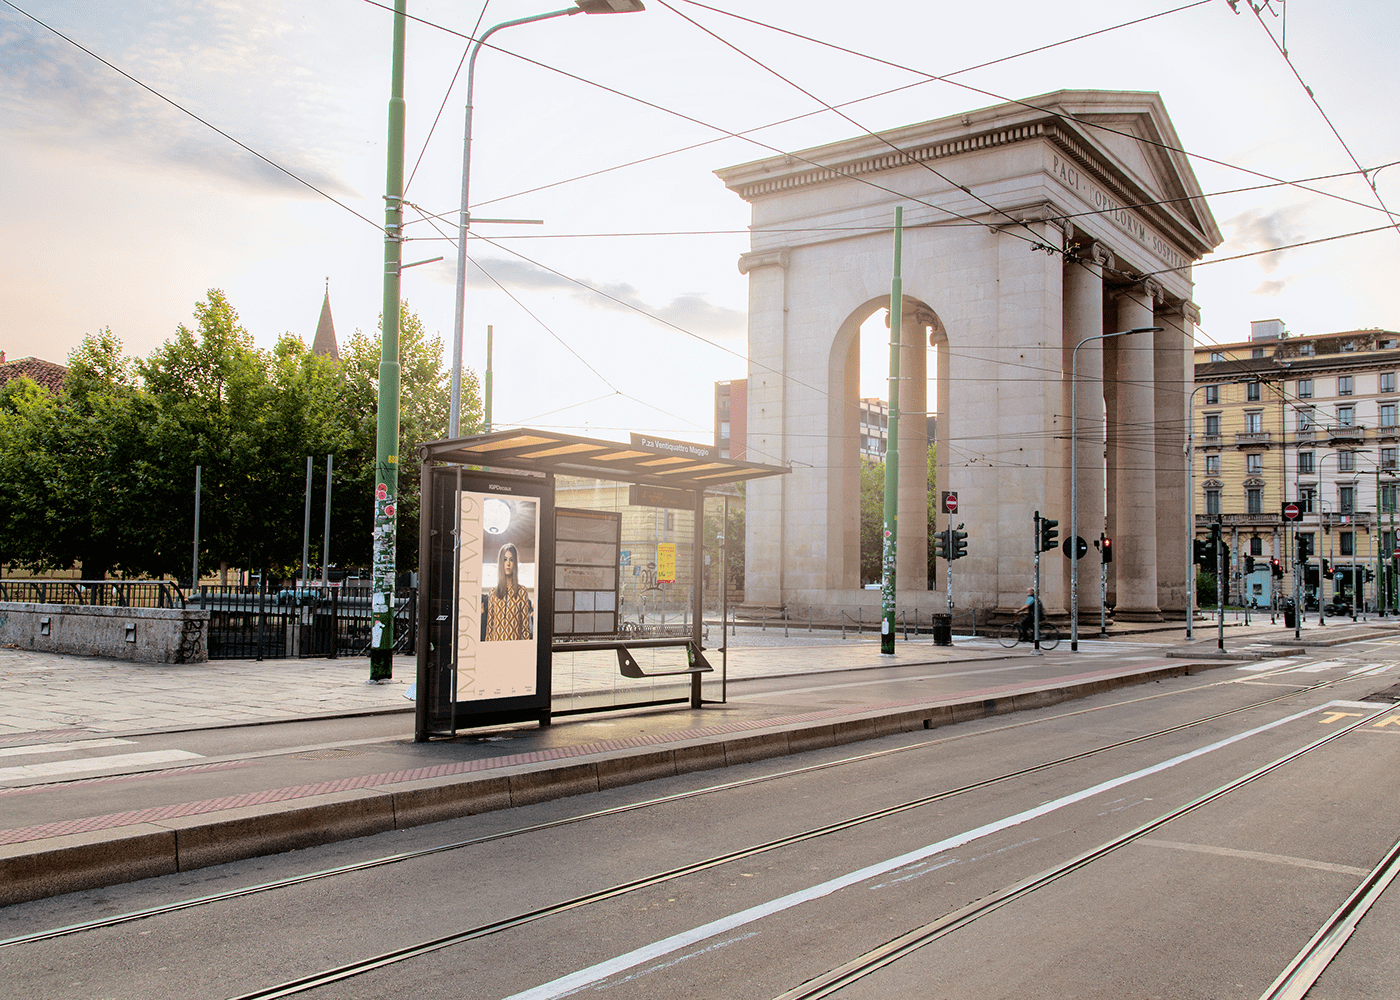 Photo of a bus stop in Milan with one of the posters made by me